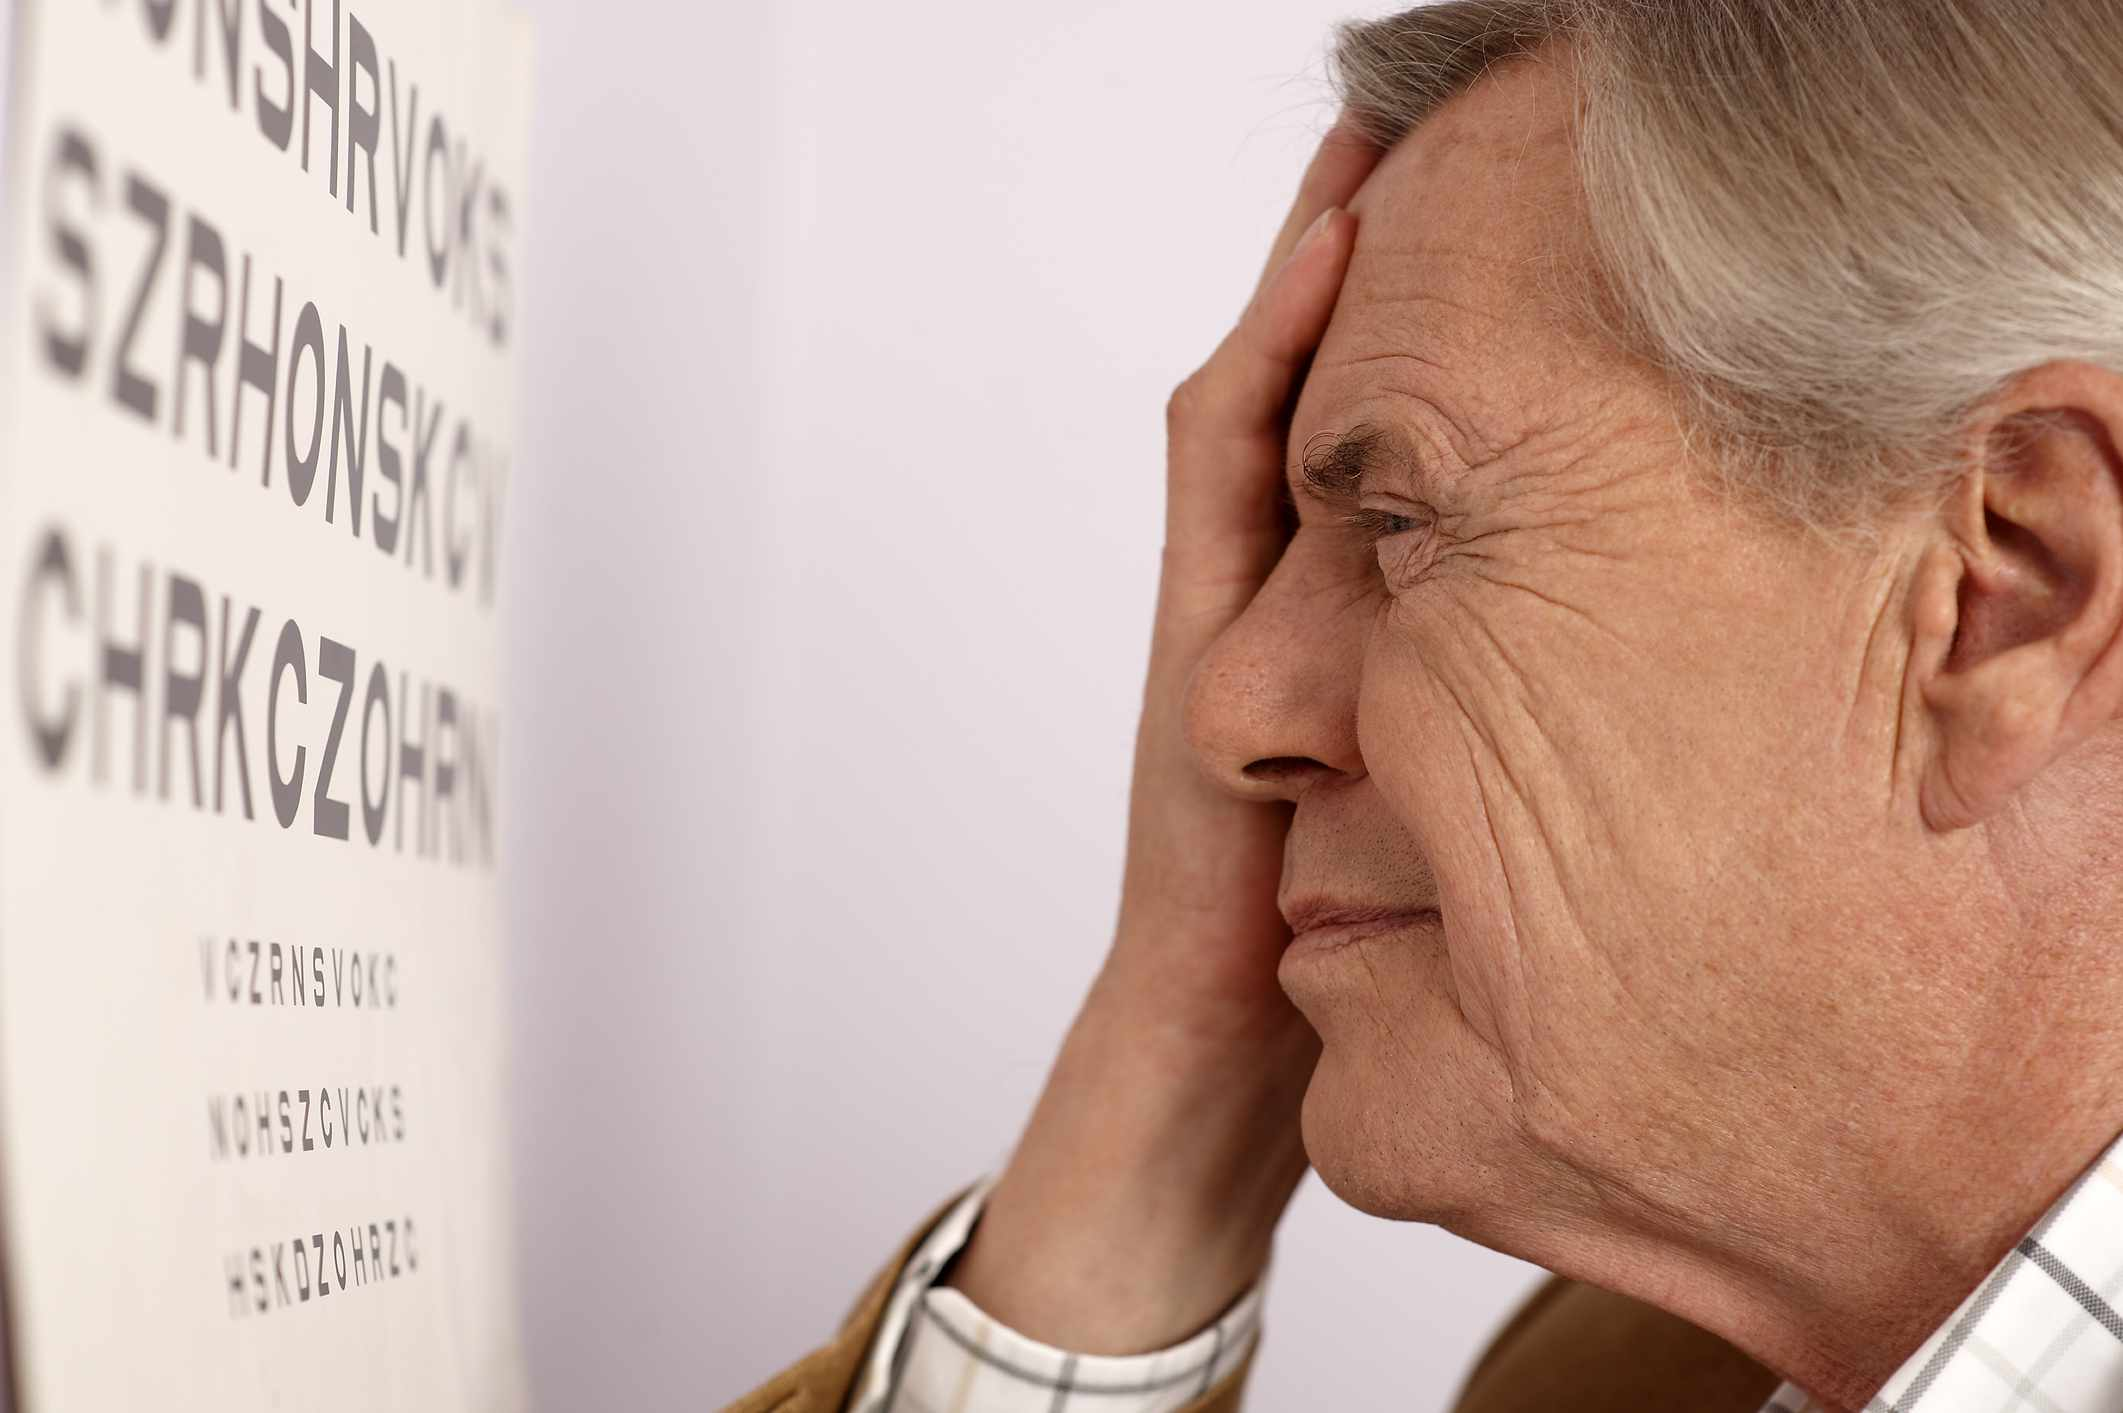 Man looking at eye chart with one eye covered by hand